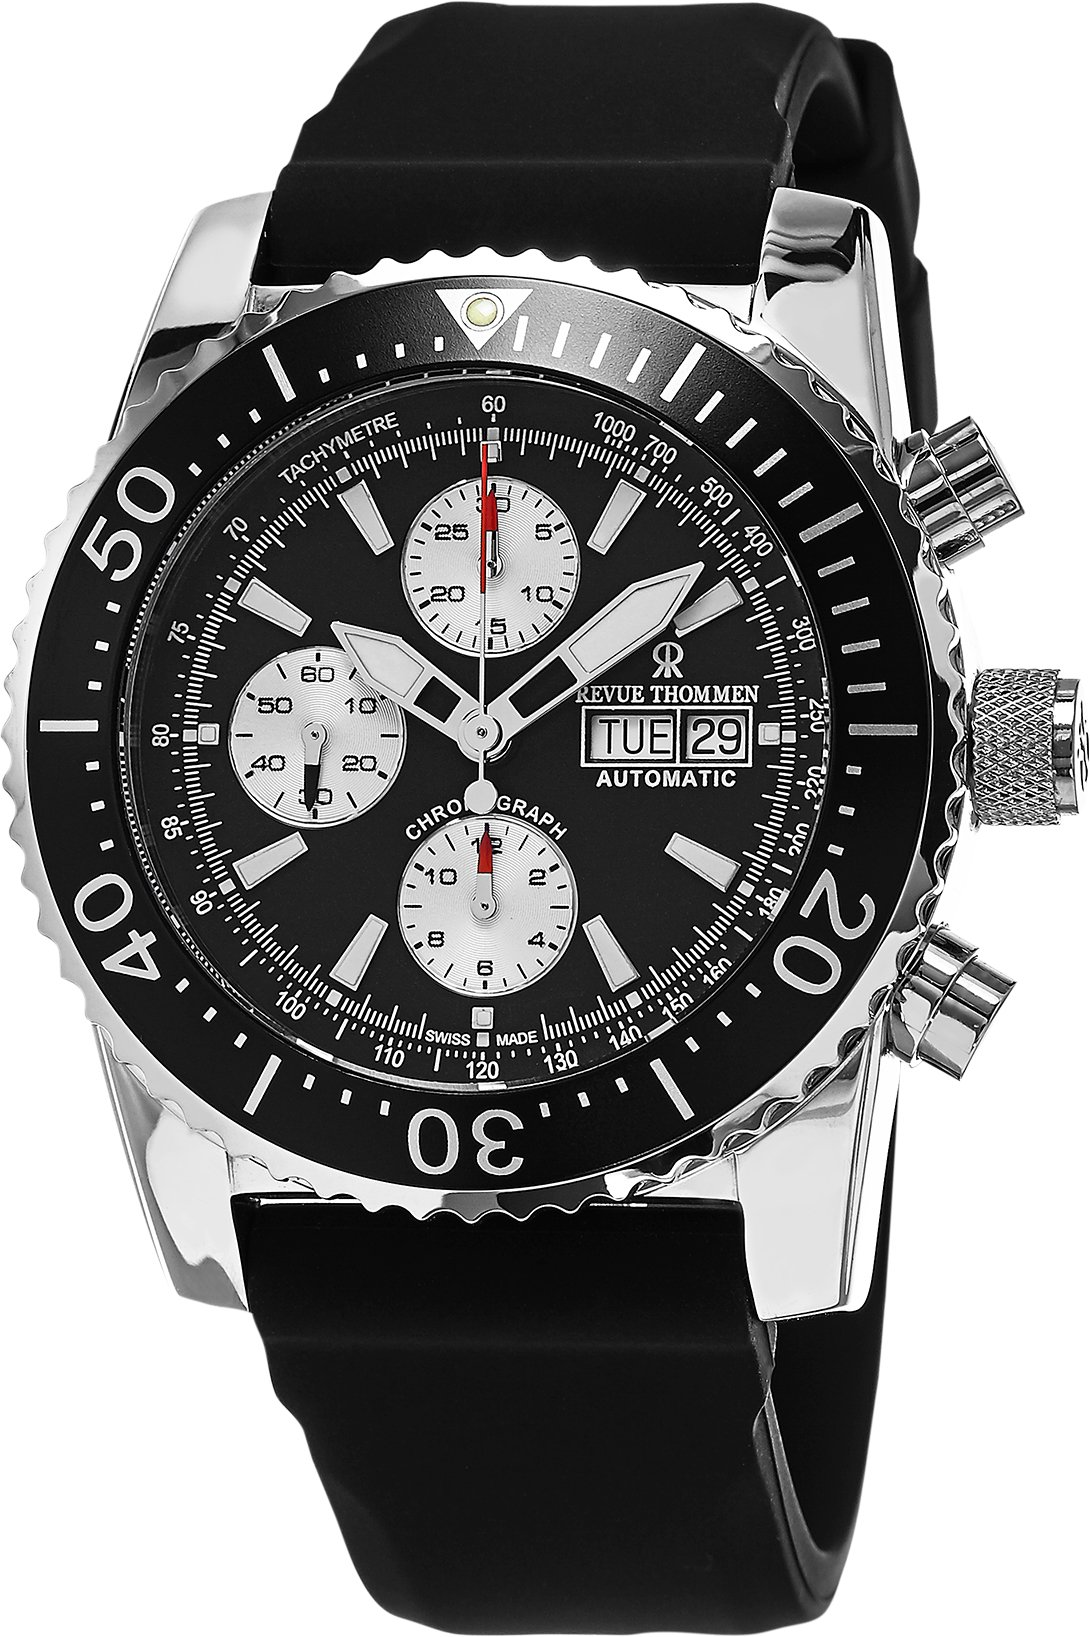 Revue Thommen Automatic Diving Watch Chronograph For Men - Stainless Steel 45mm Analog Black face Sapphire Crystal Day Date Watch - Waterproof Black Rubber Band Swiss Made Mens Diver Watch 17030.6537 by Revue Thommen